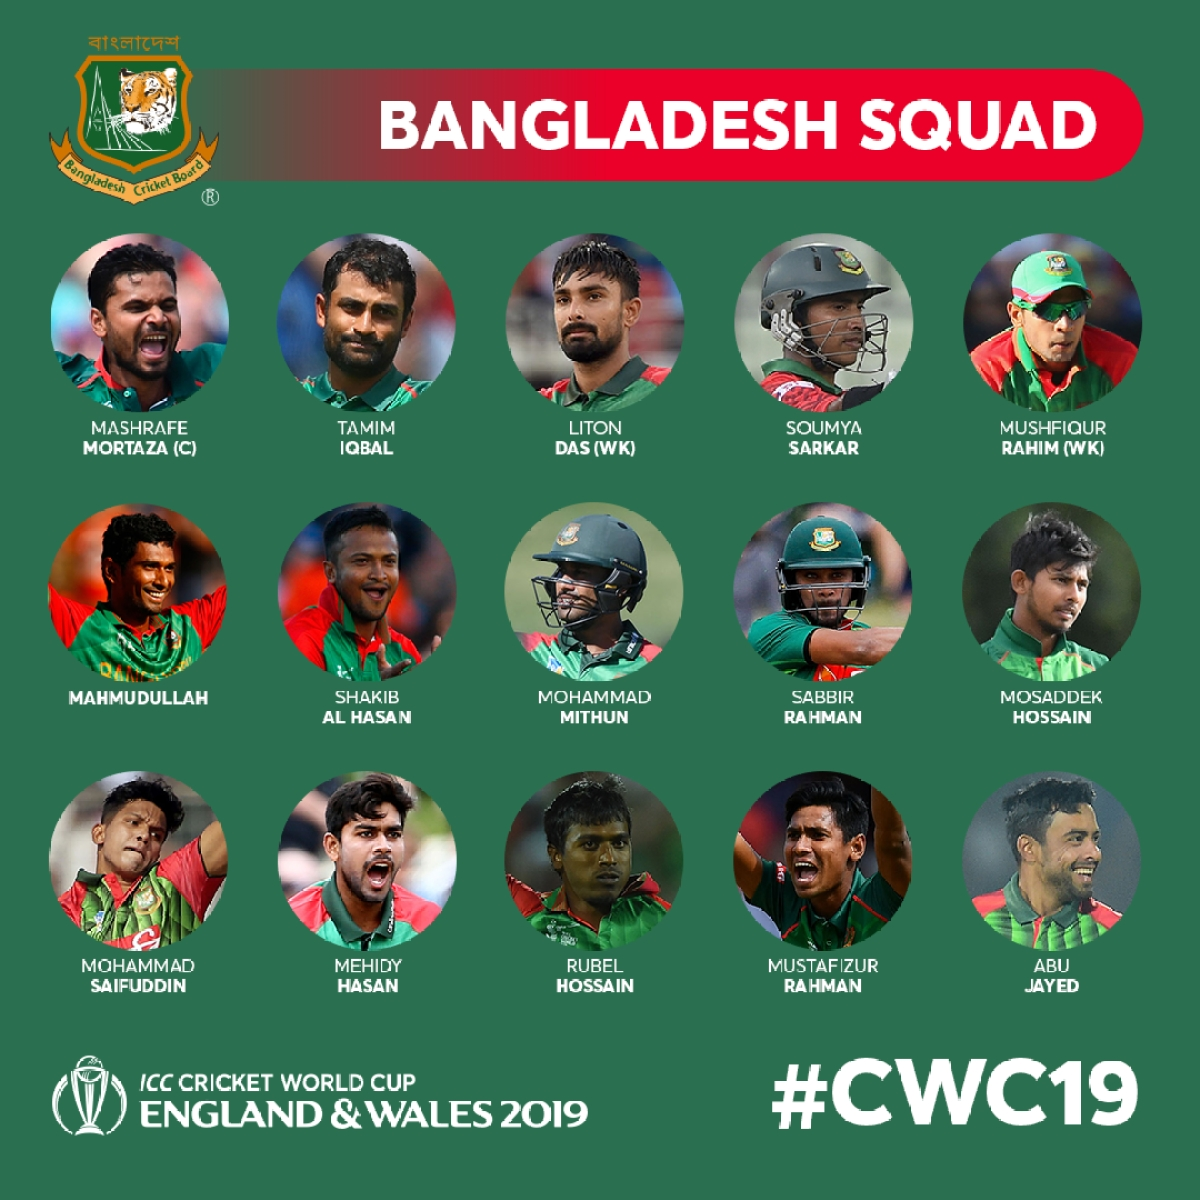 bangladesh s squad for the icc cricket world cup 2019